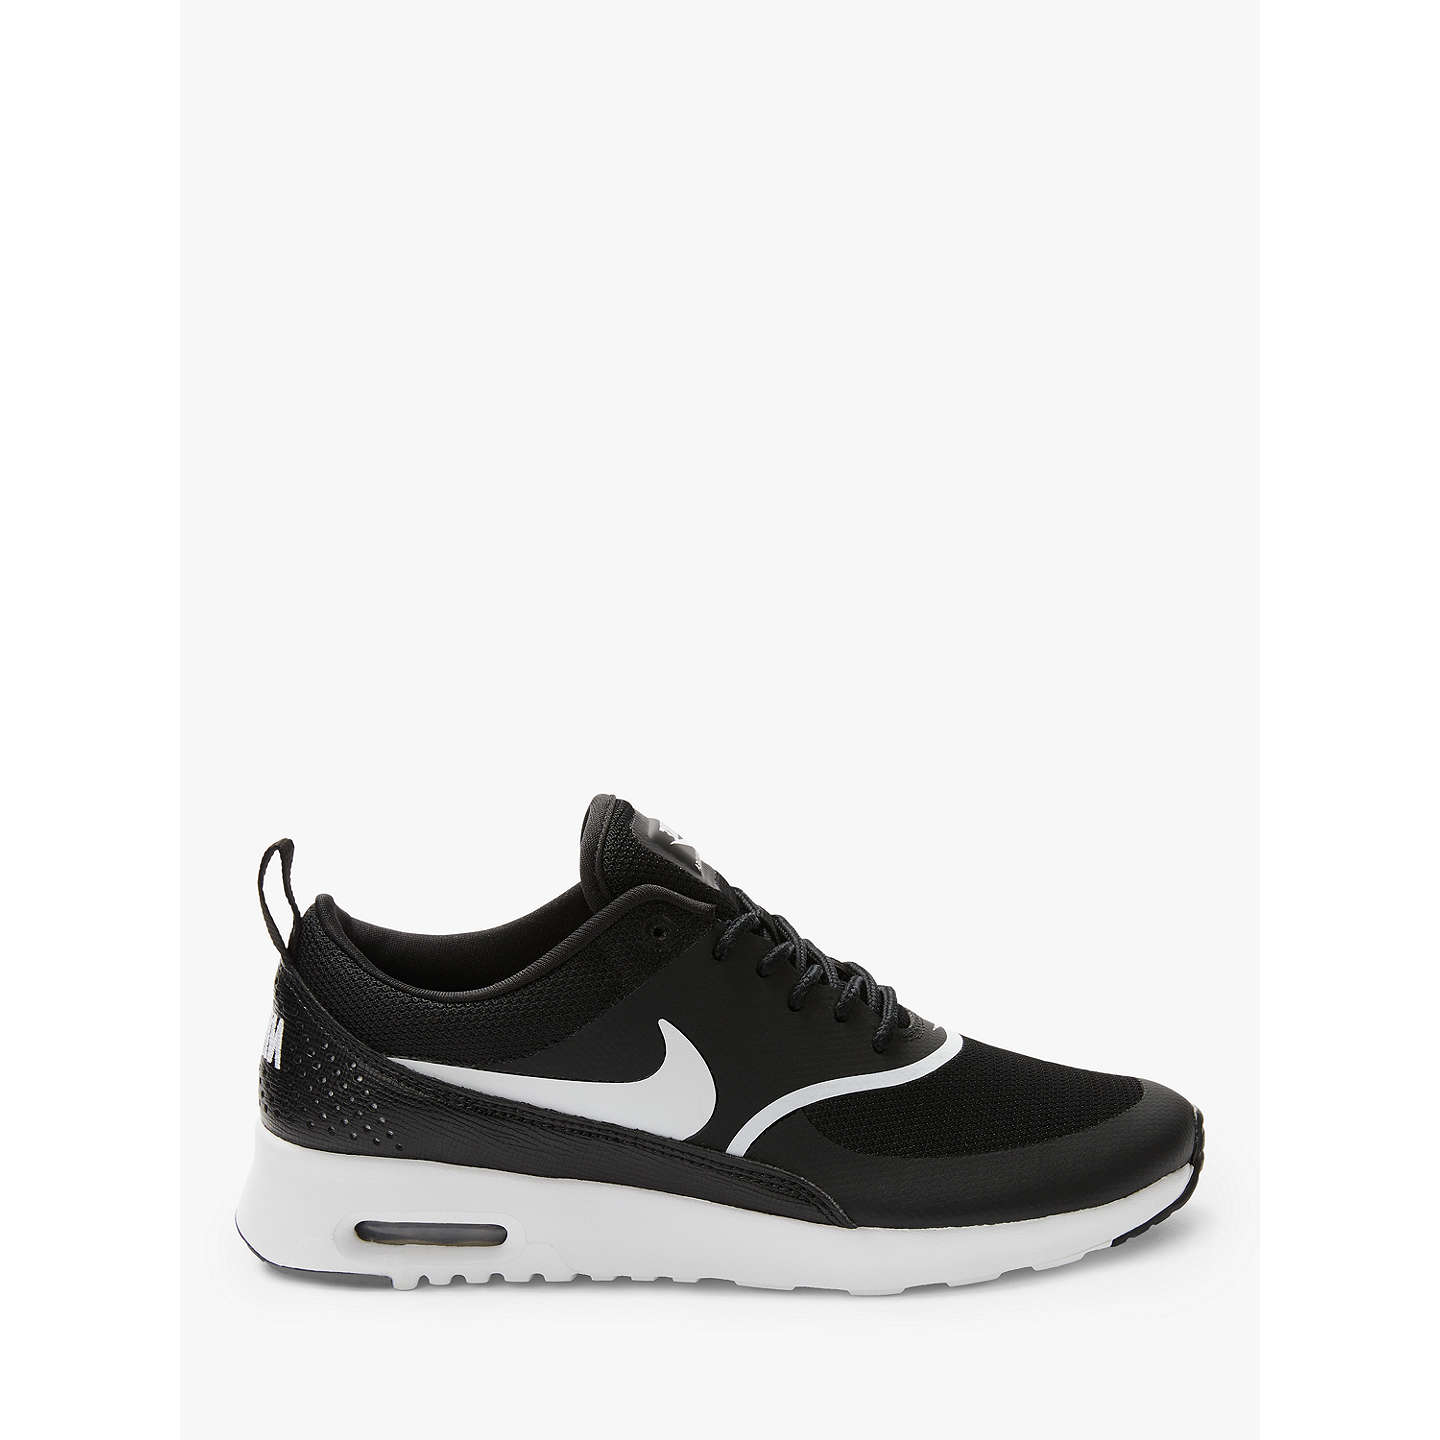 nike air max thea women 39 s trainers at john lewis. Black Bedroom Furniture Sets. Home Design Ideas